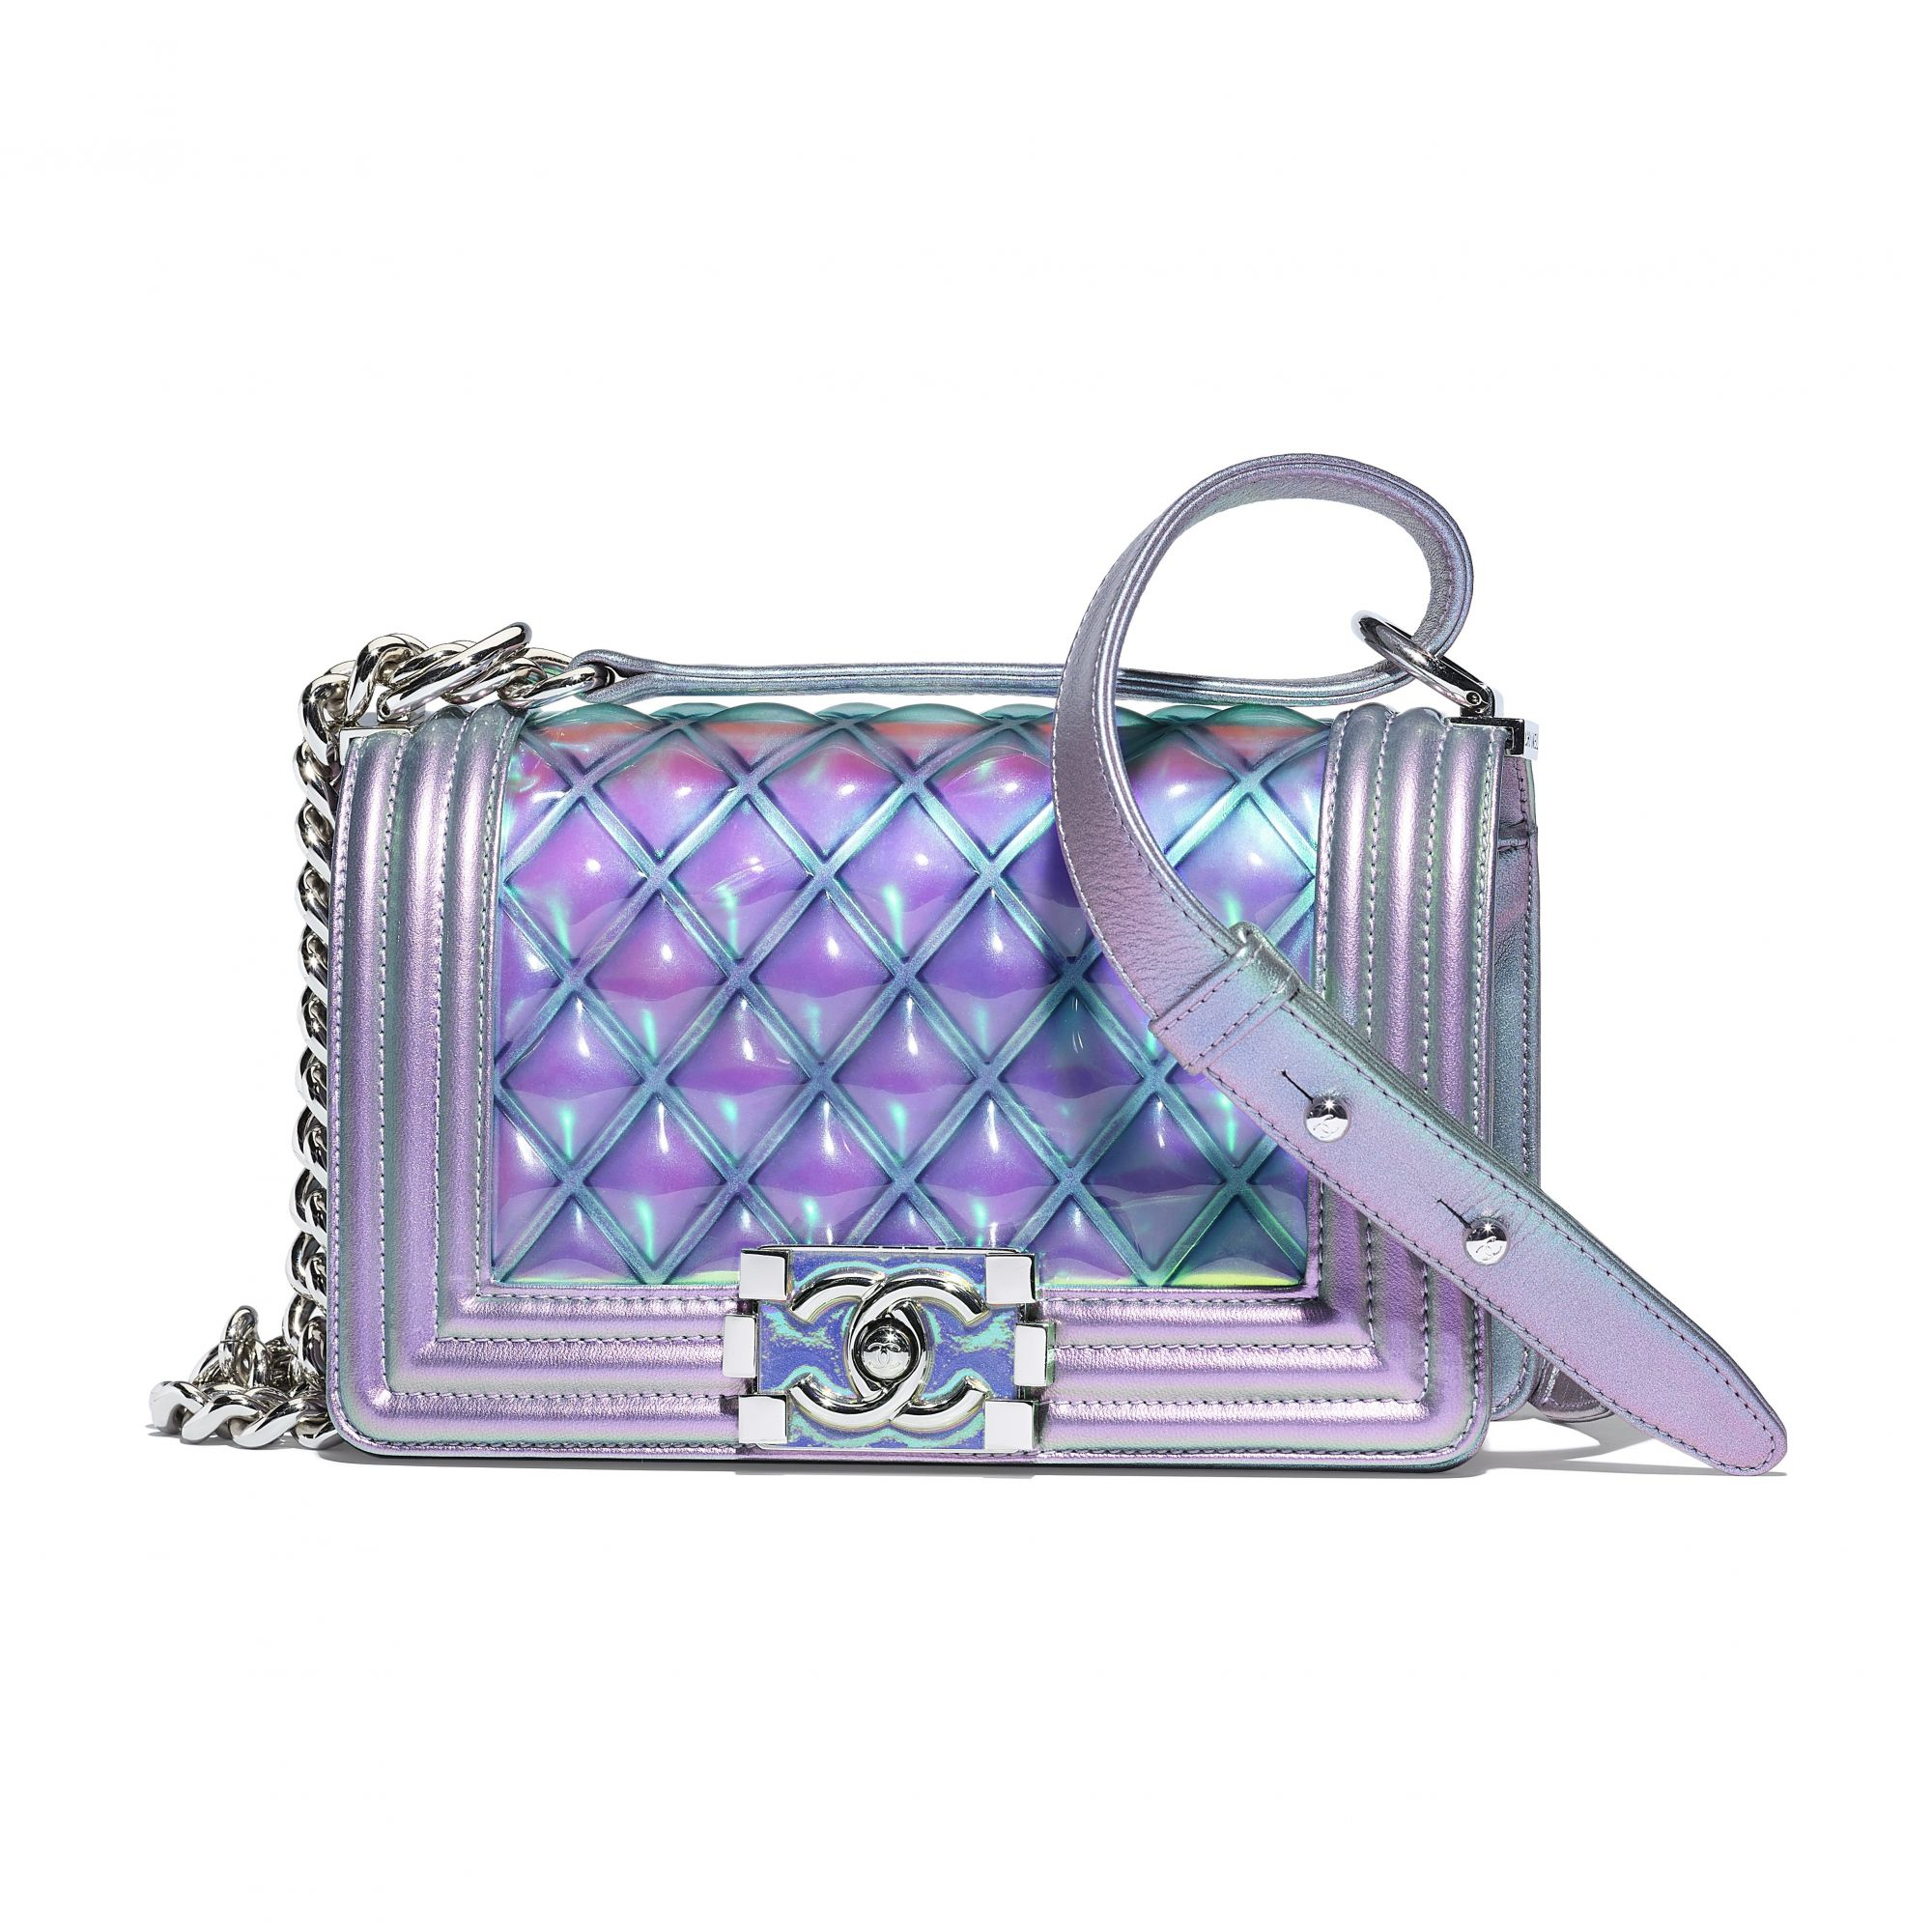 Boy Chanel bag in  purple PVC and iridescent leather